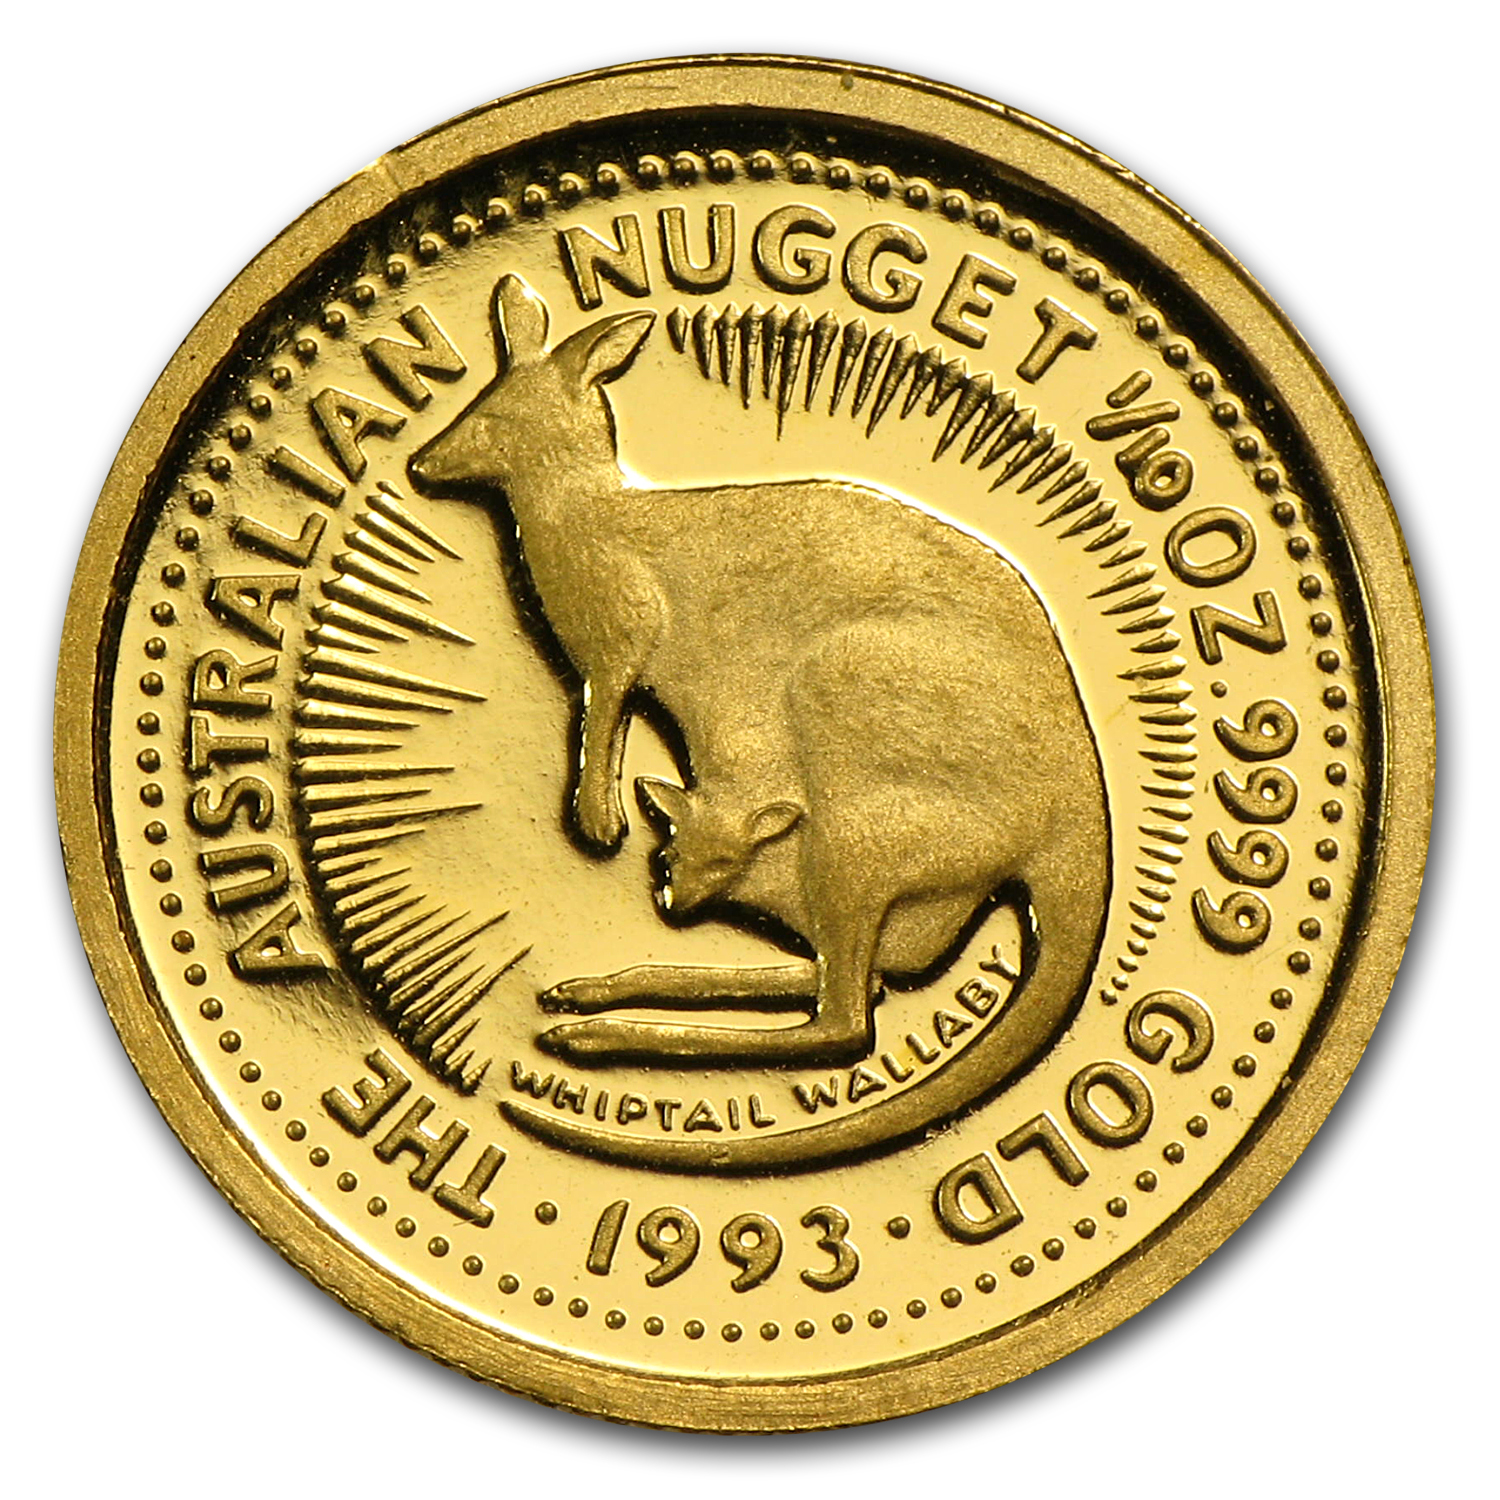 1993 1/10 oz Australian Proof Gold Nugget